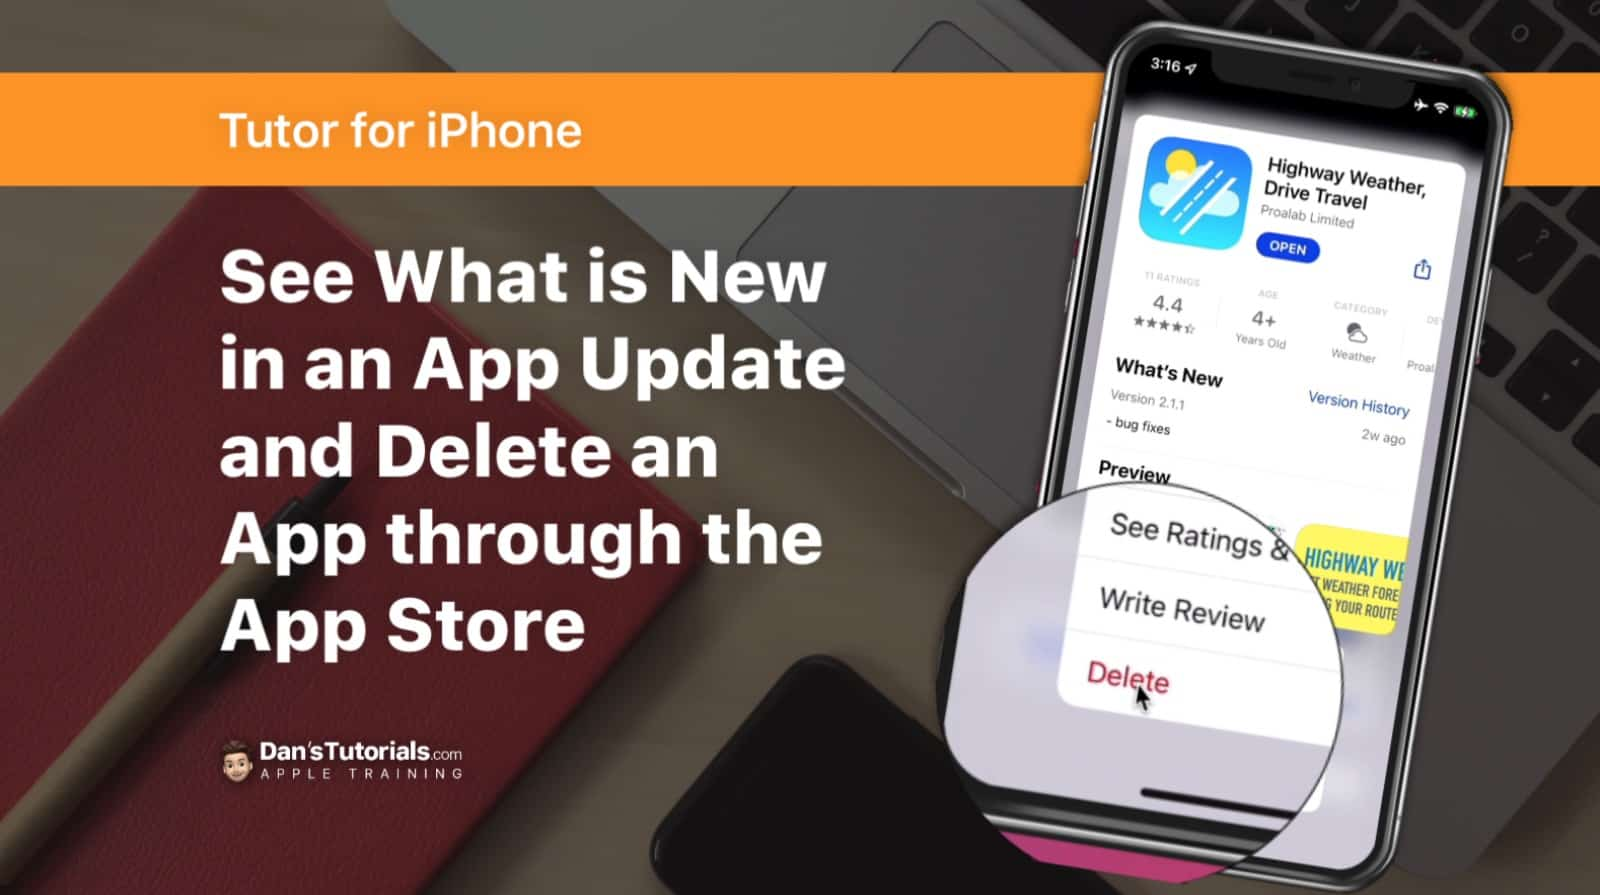 Find App Updates and Delete Apps through the App Store